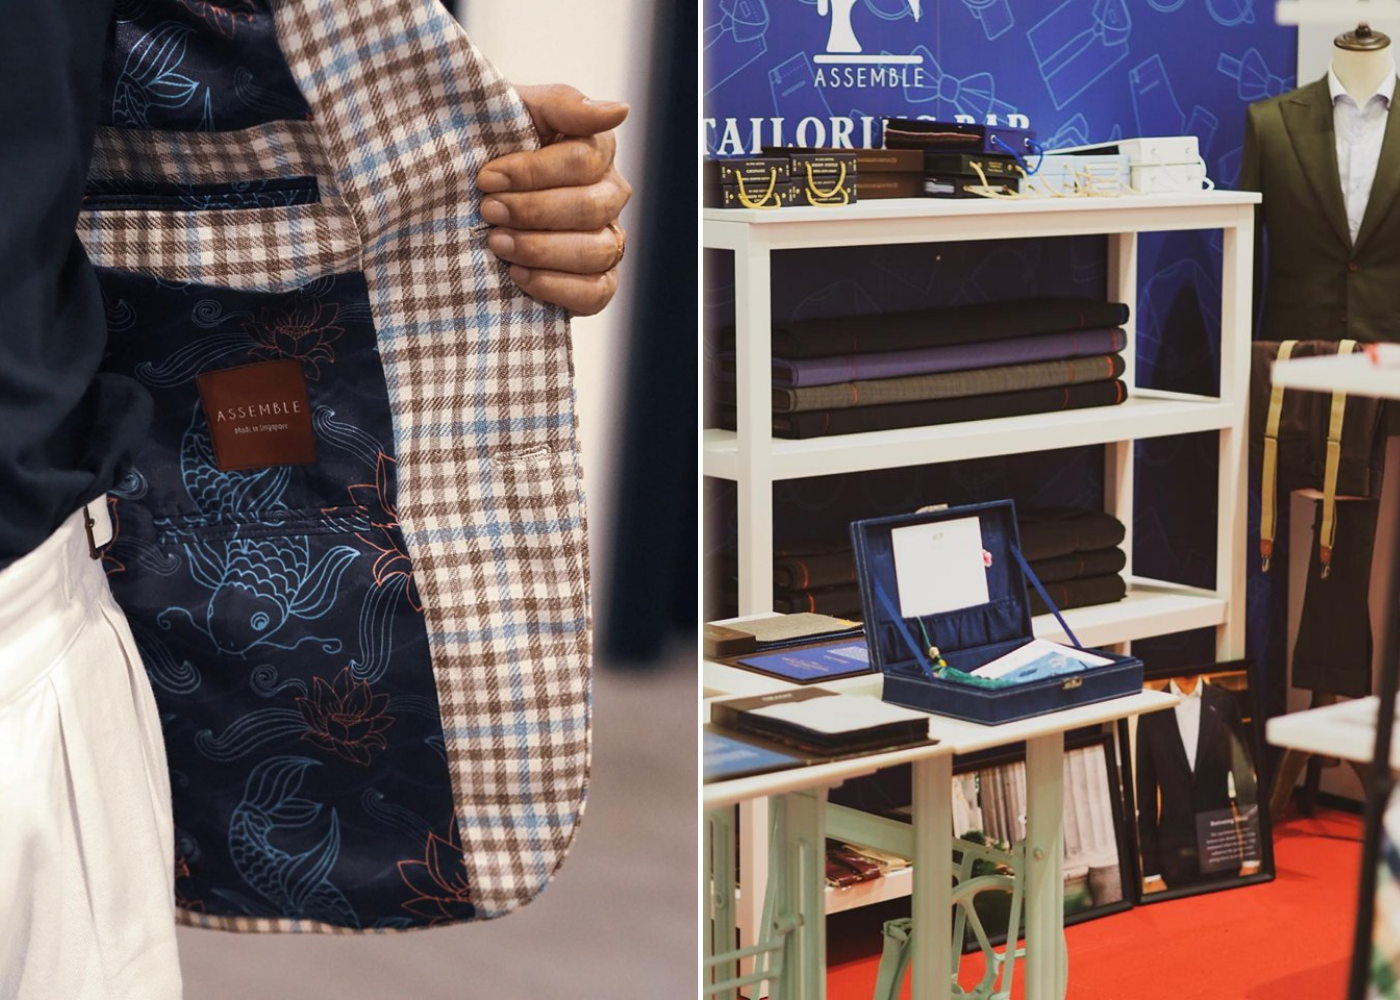 Where to shop this June 2019 | Gentleman's pop-up by Assemble